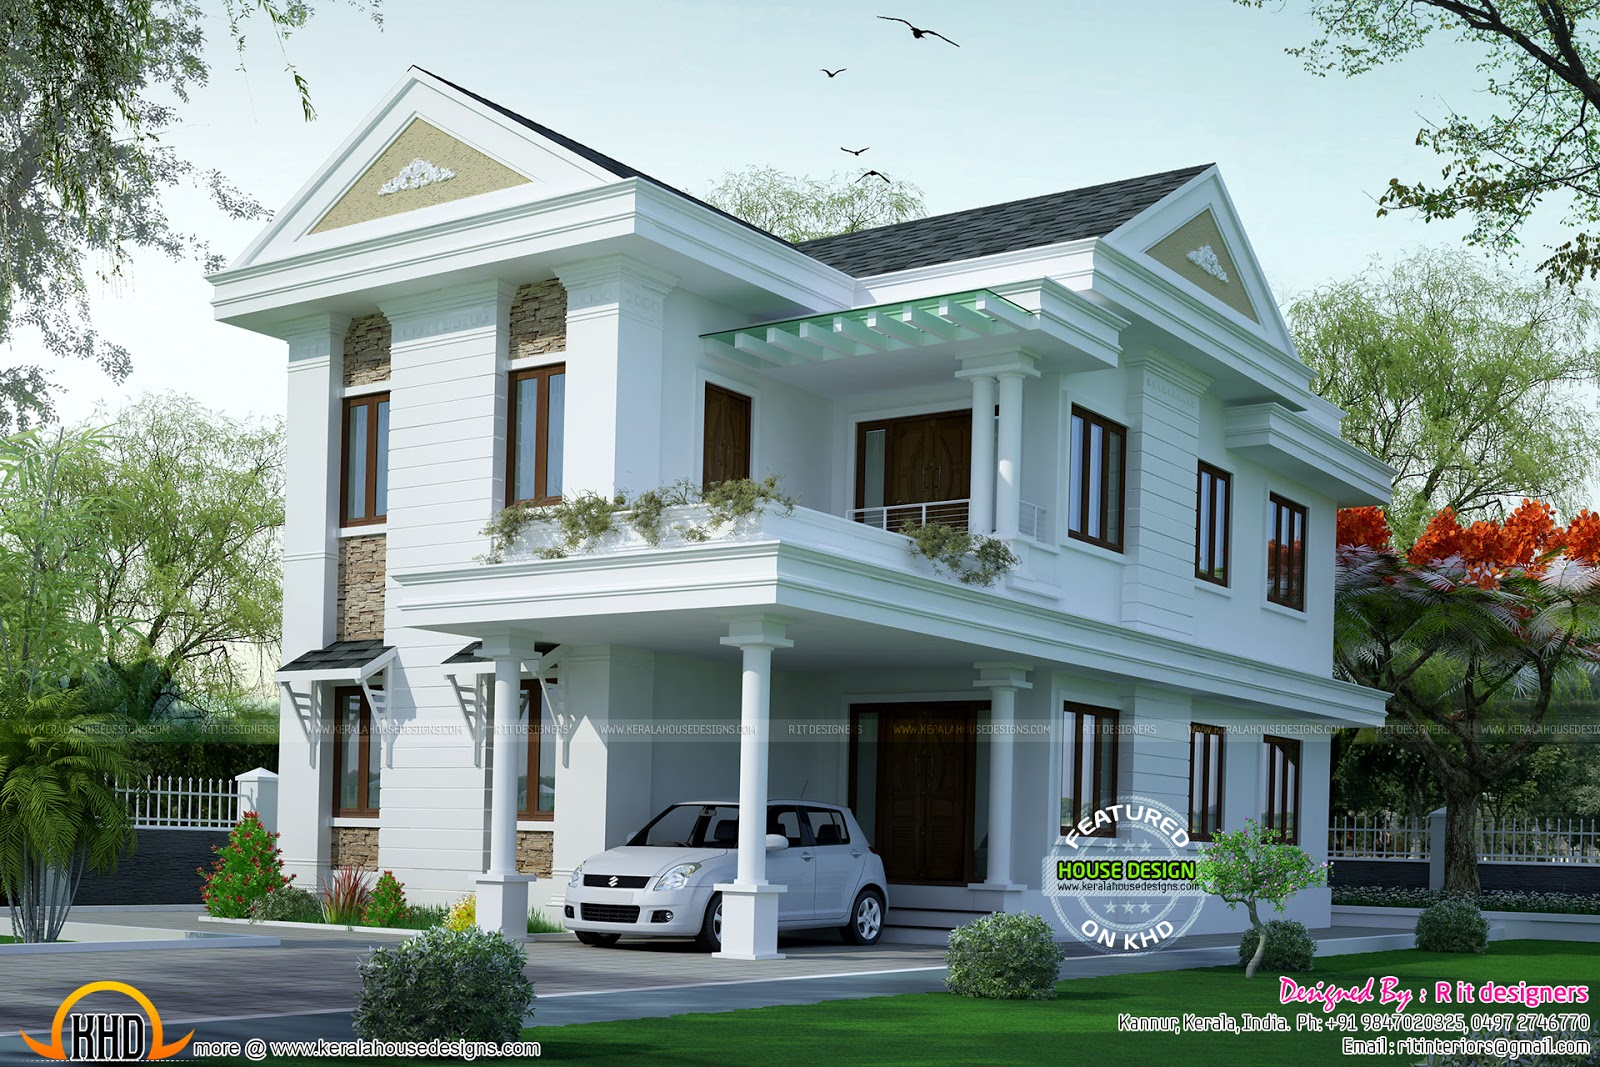 Dream Home Design Of Small Double Floor Dream Home Design Kerala Home Design